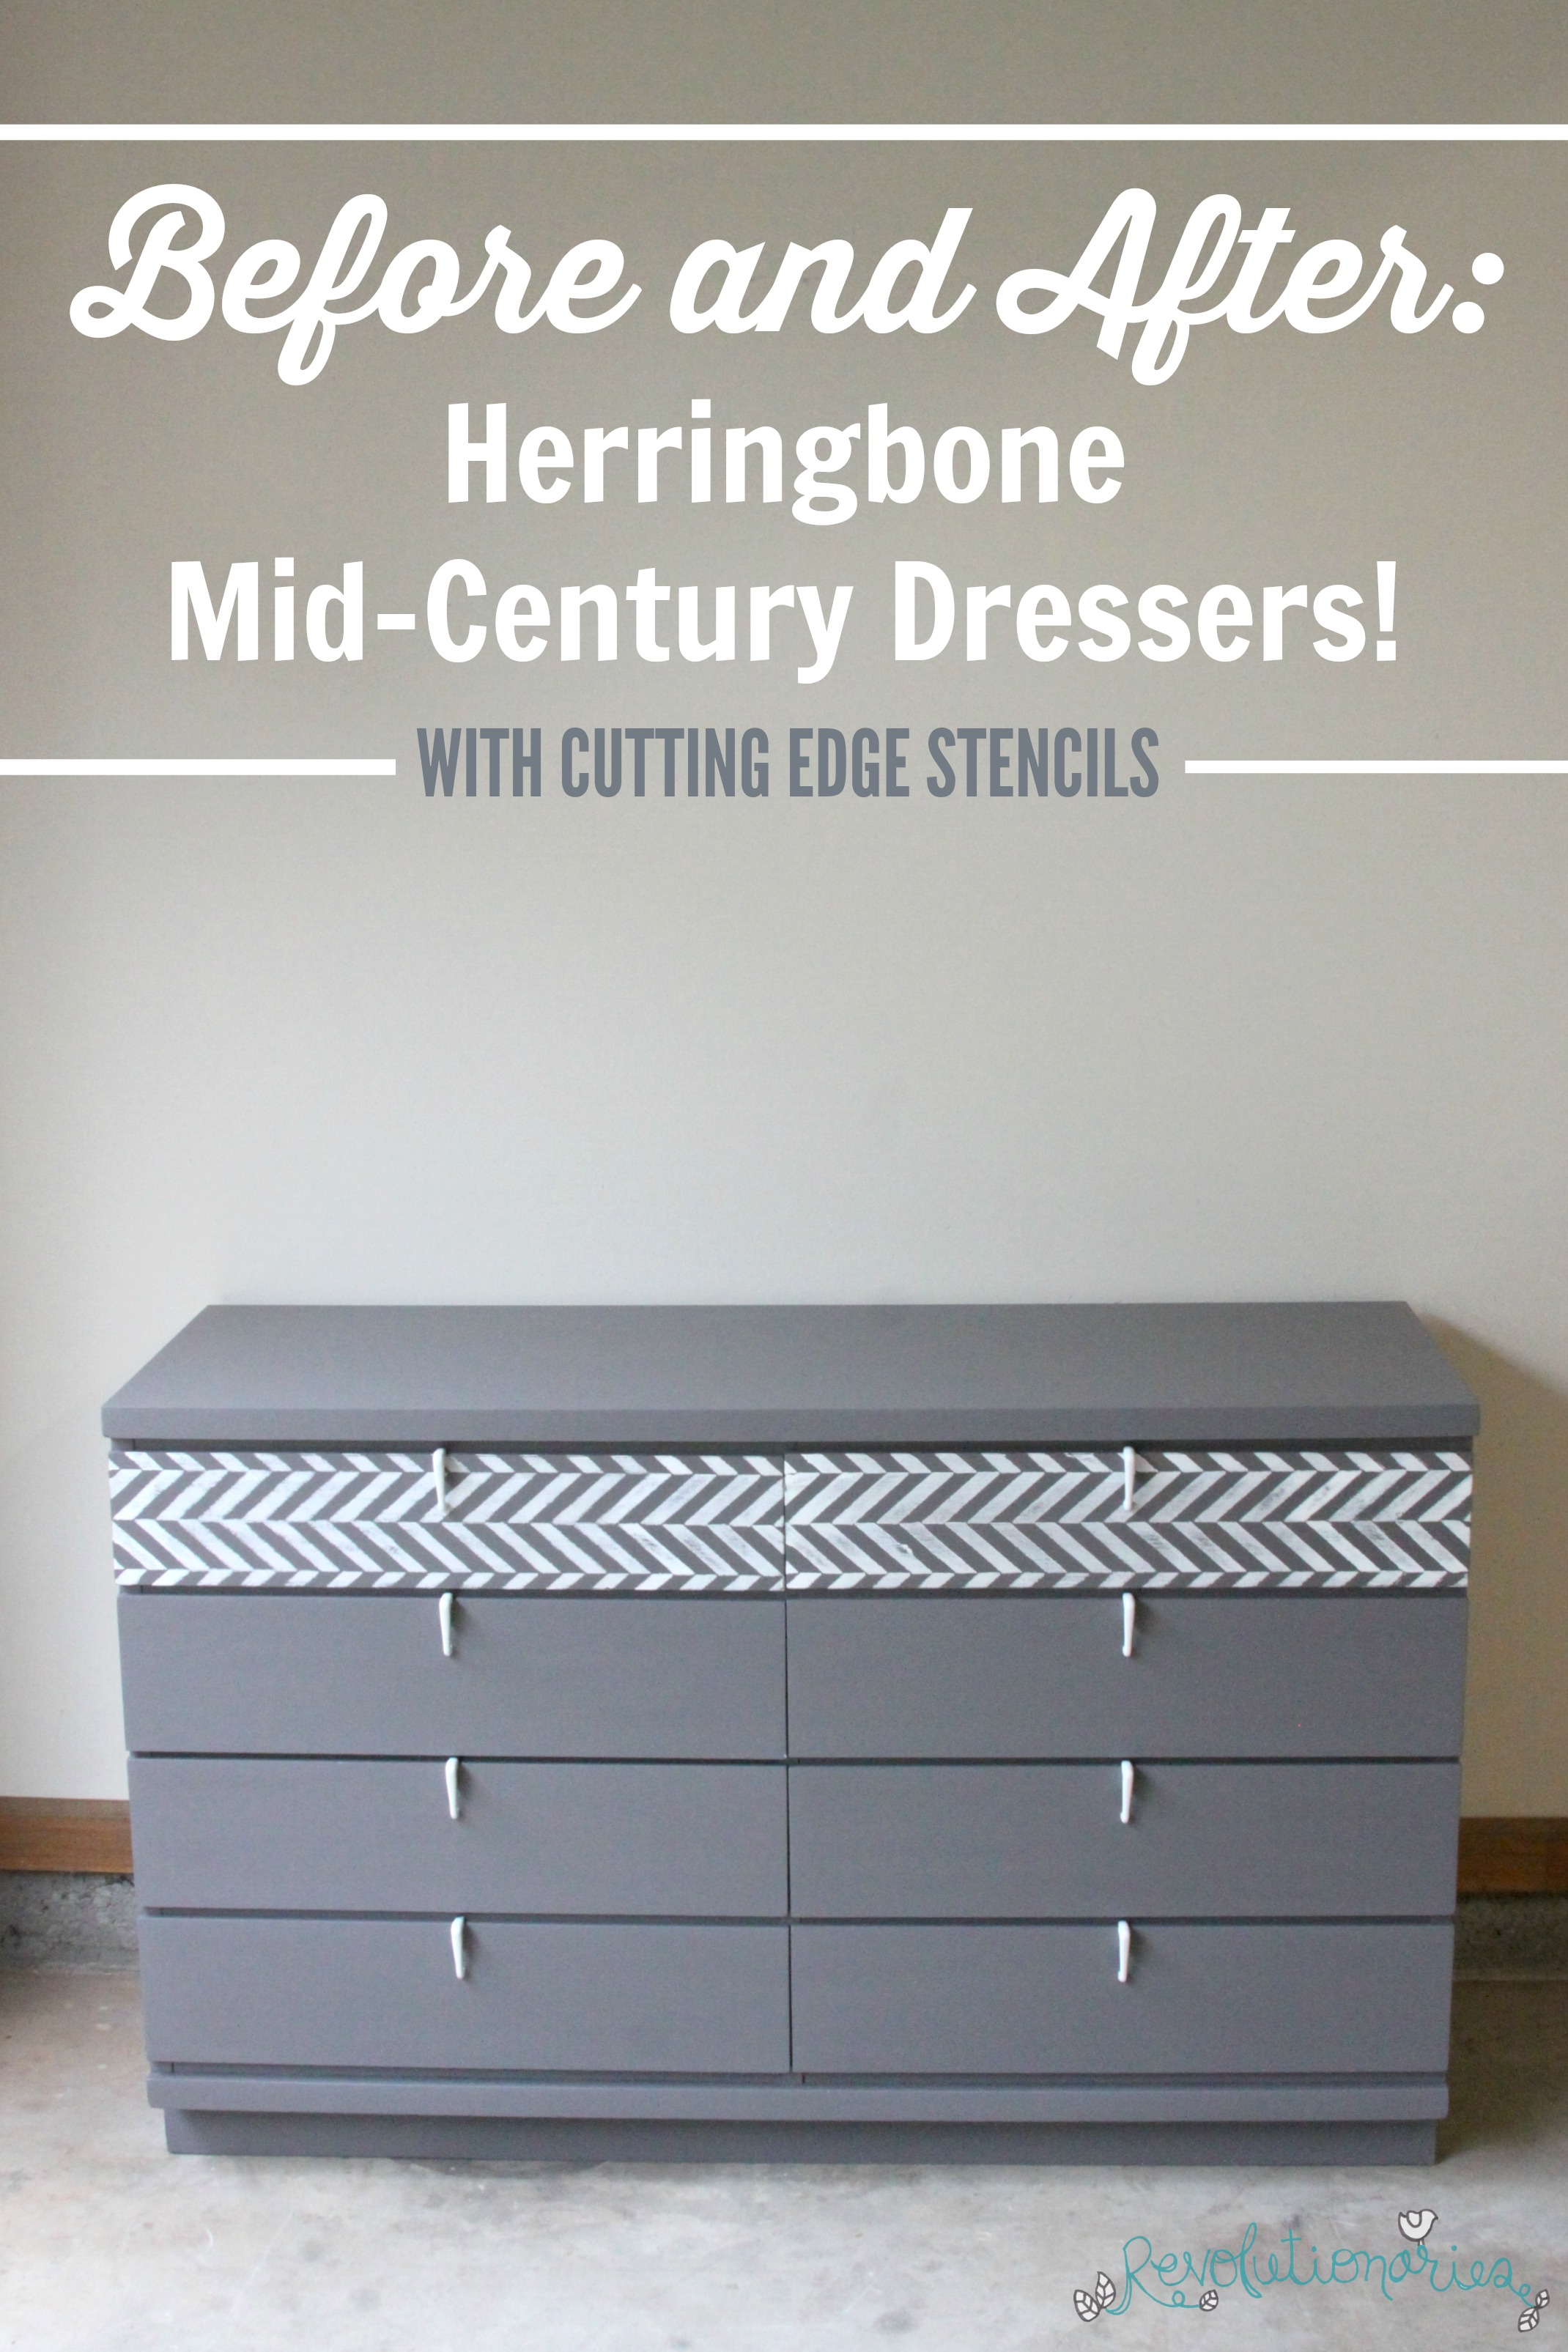 before-and-after-herringbone-mid-century-dressers-11.jpg